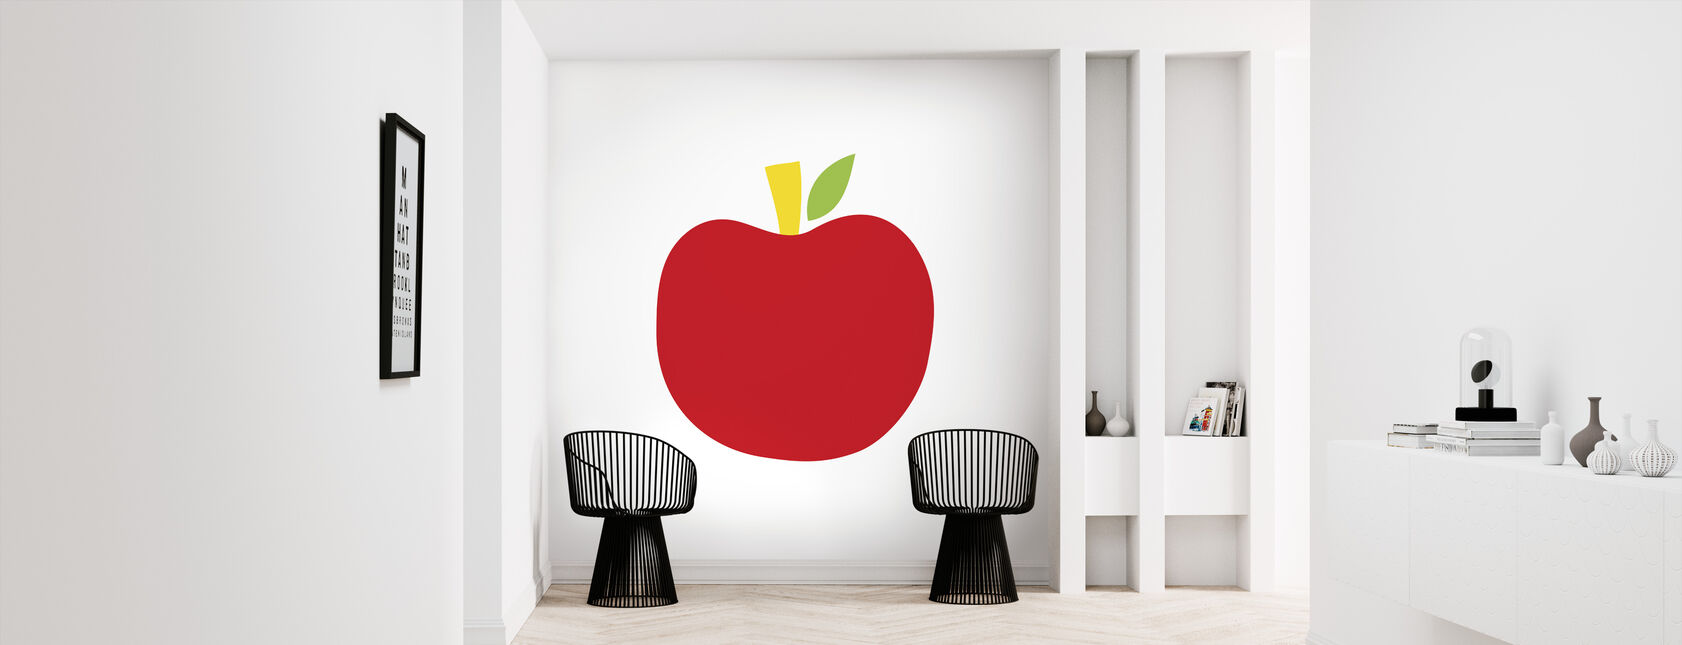 Red Apple - Wallpaper - Hallway